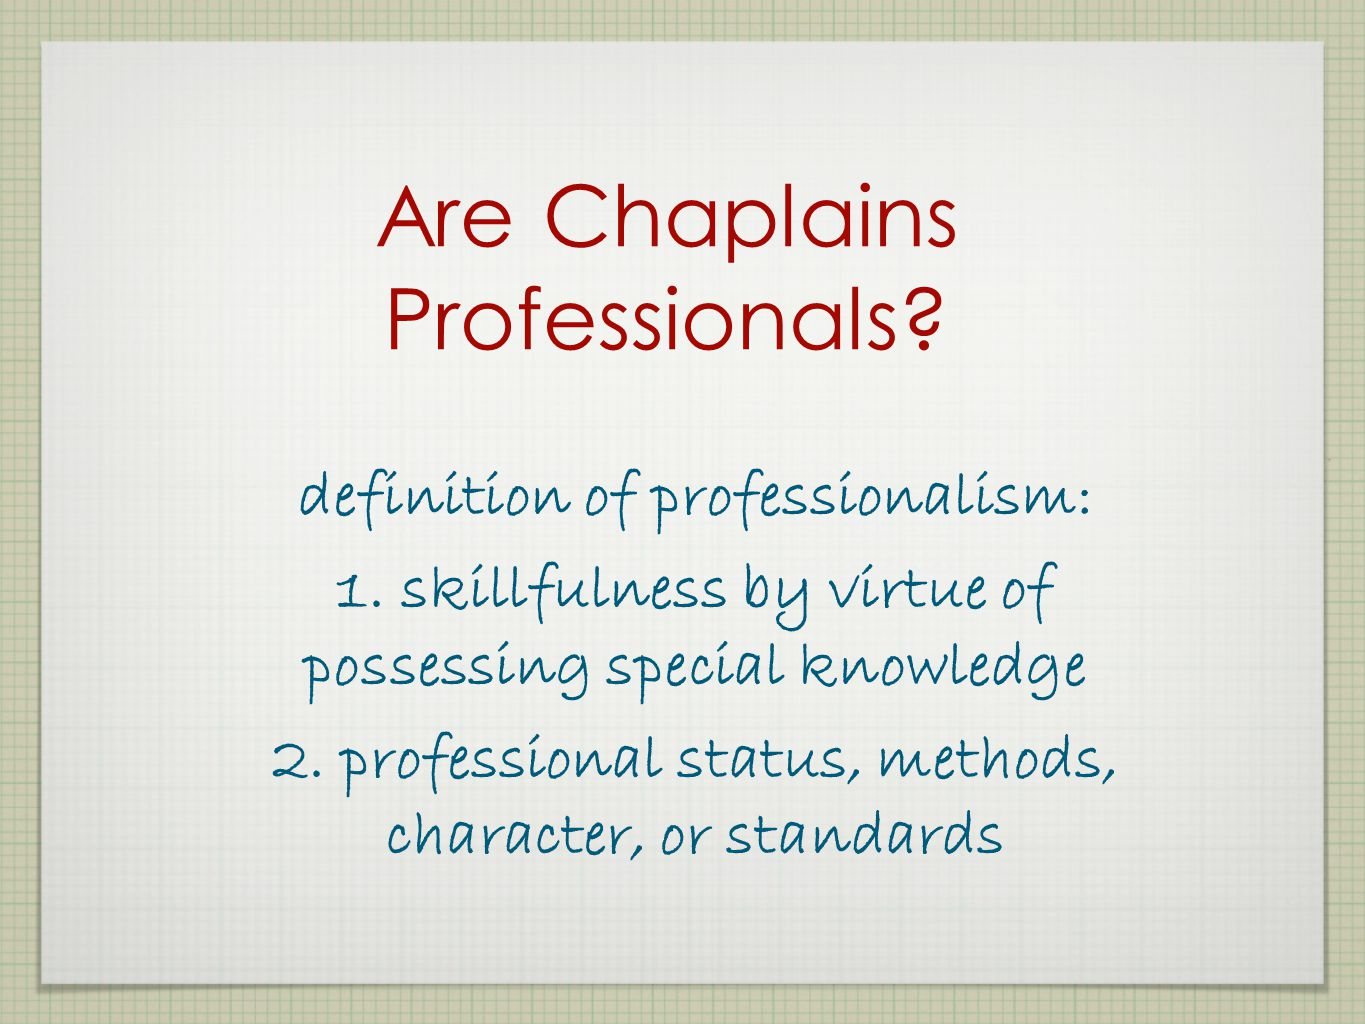 so why not use metrics in chaplain services? we do it subconsciously anyway! Bring it out into the light!